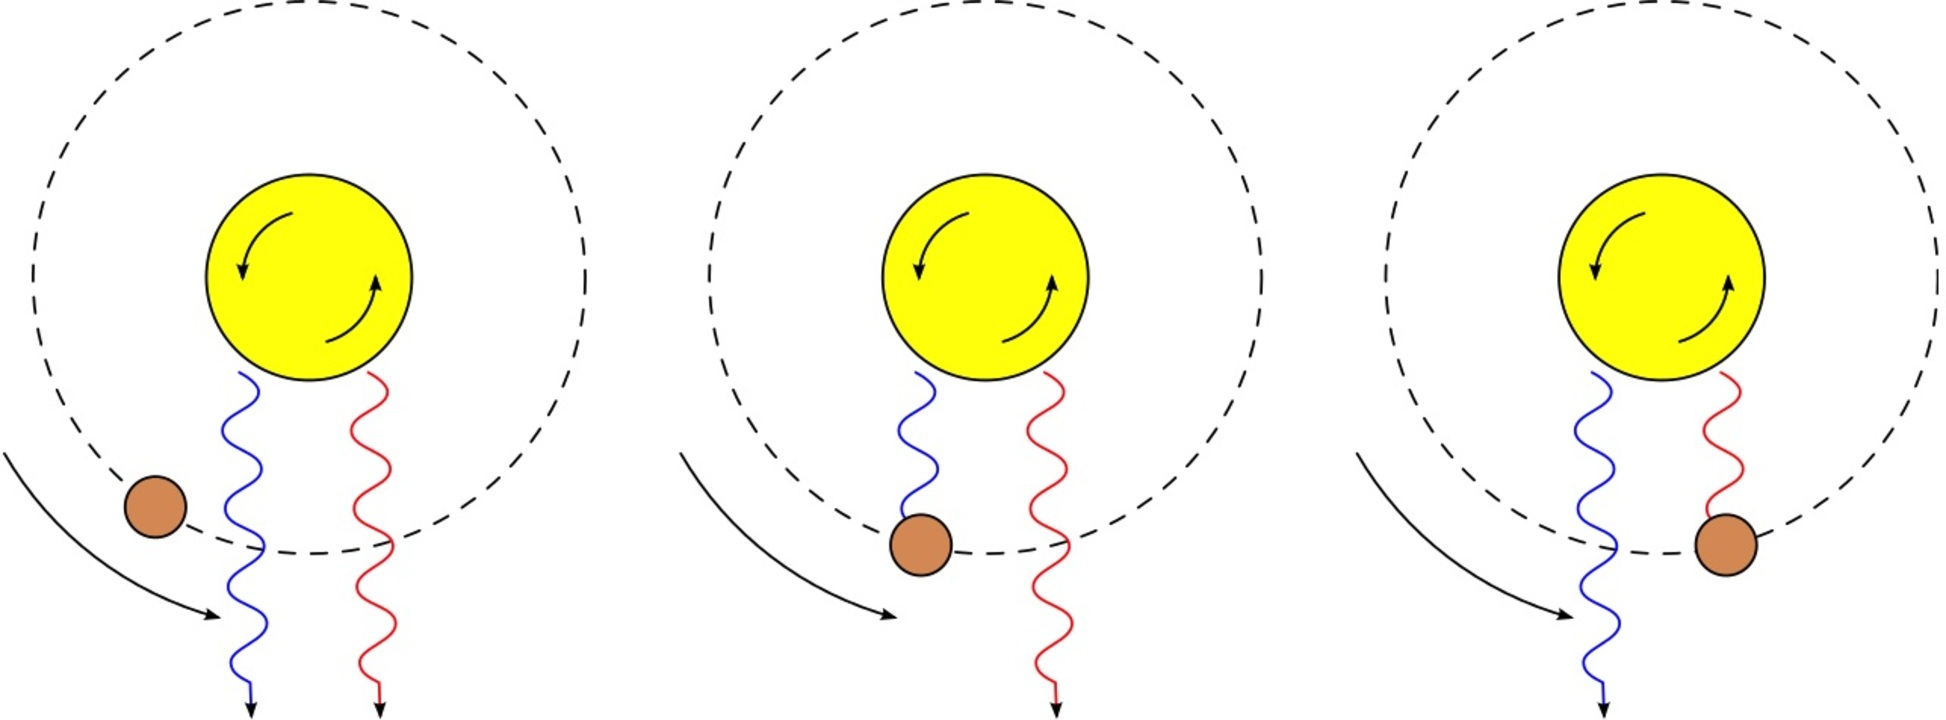 The planet and star rotate in the same direction, a prograde orbit. - Image Credits:  Wikipedia/Autiwa ,  CC BY